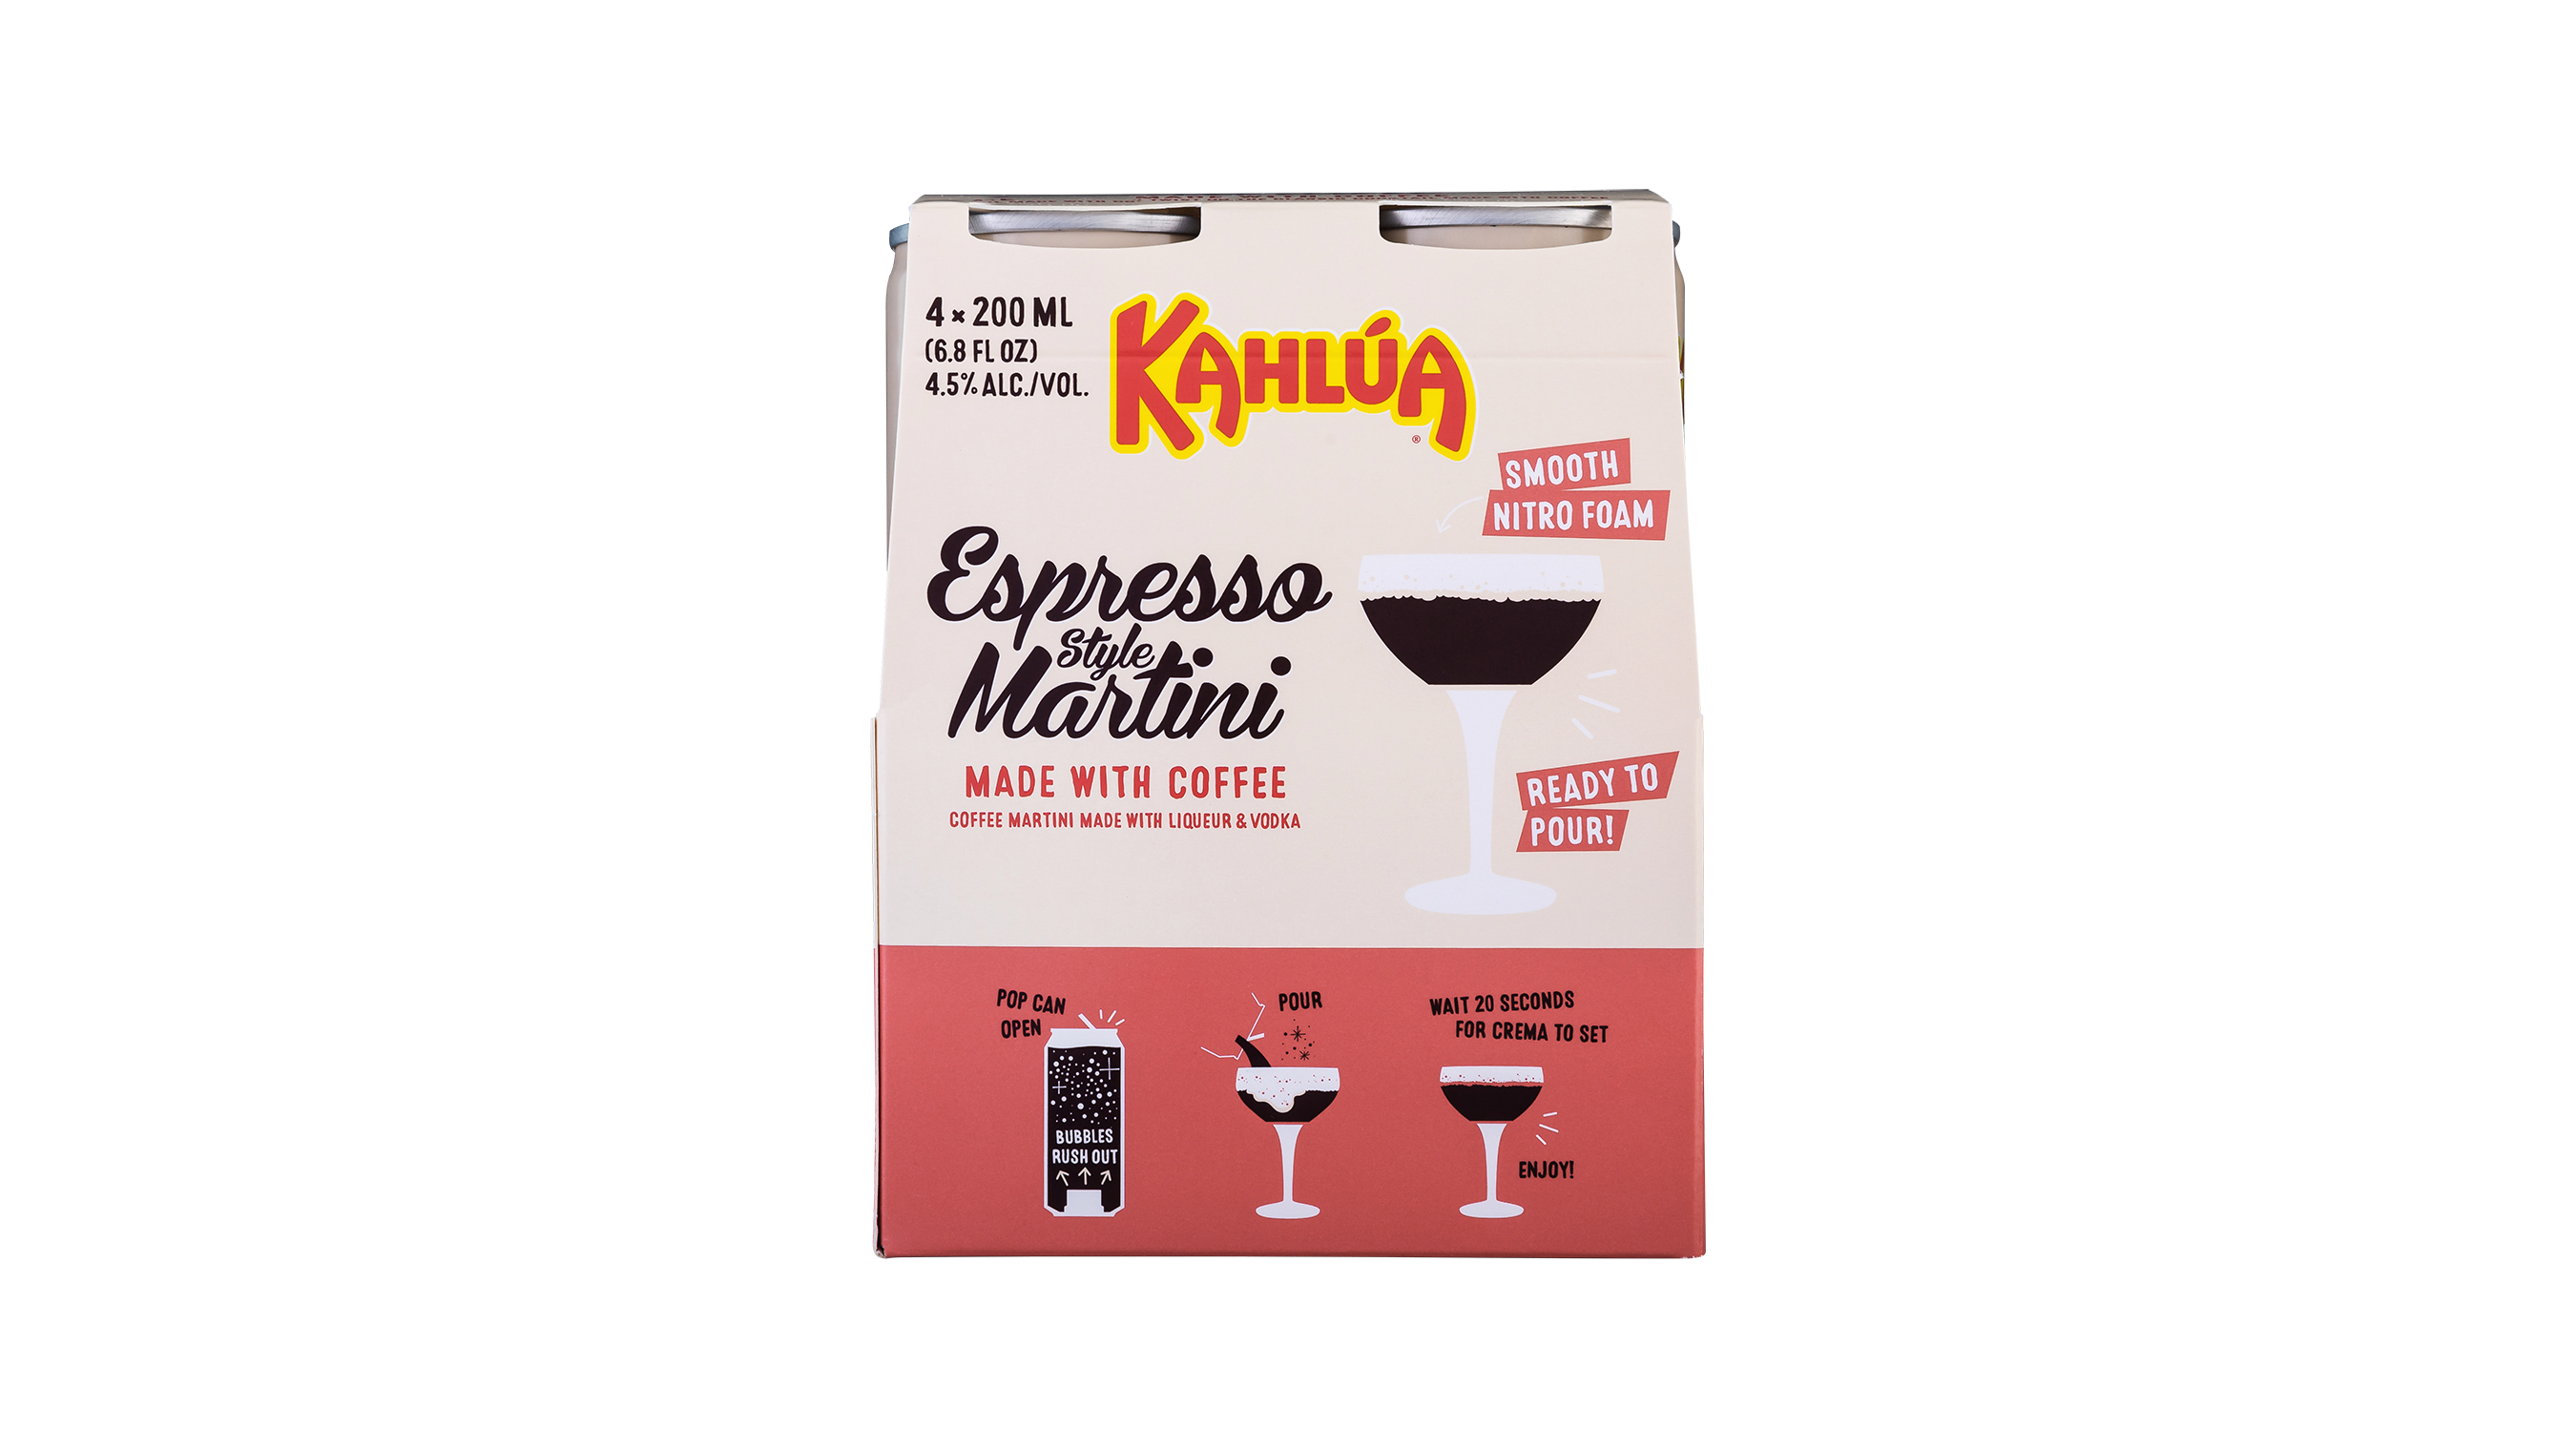 Kahlúa Espresso Style Martini ready-to-drink (RTD) four-pack